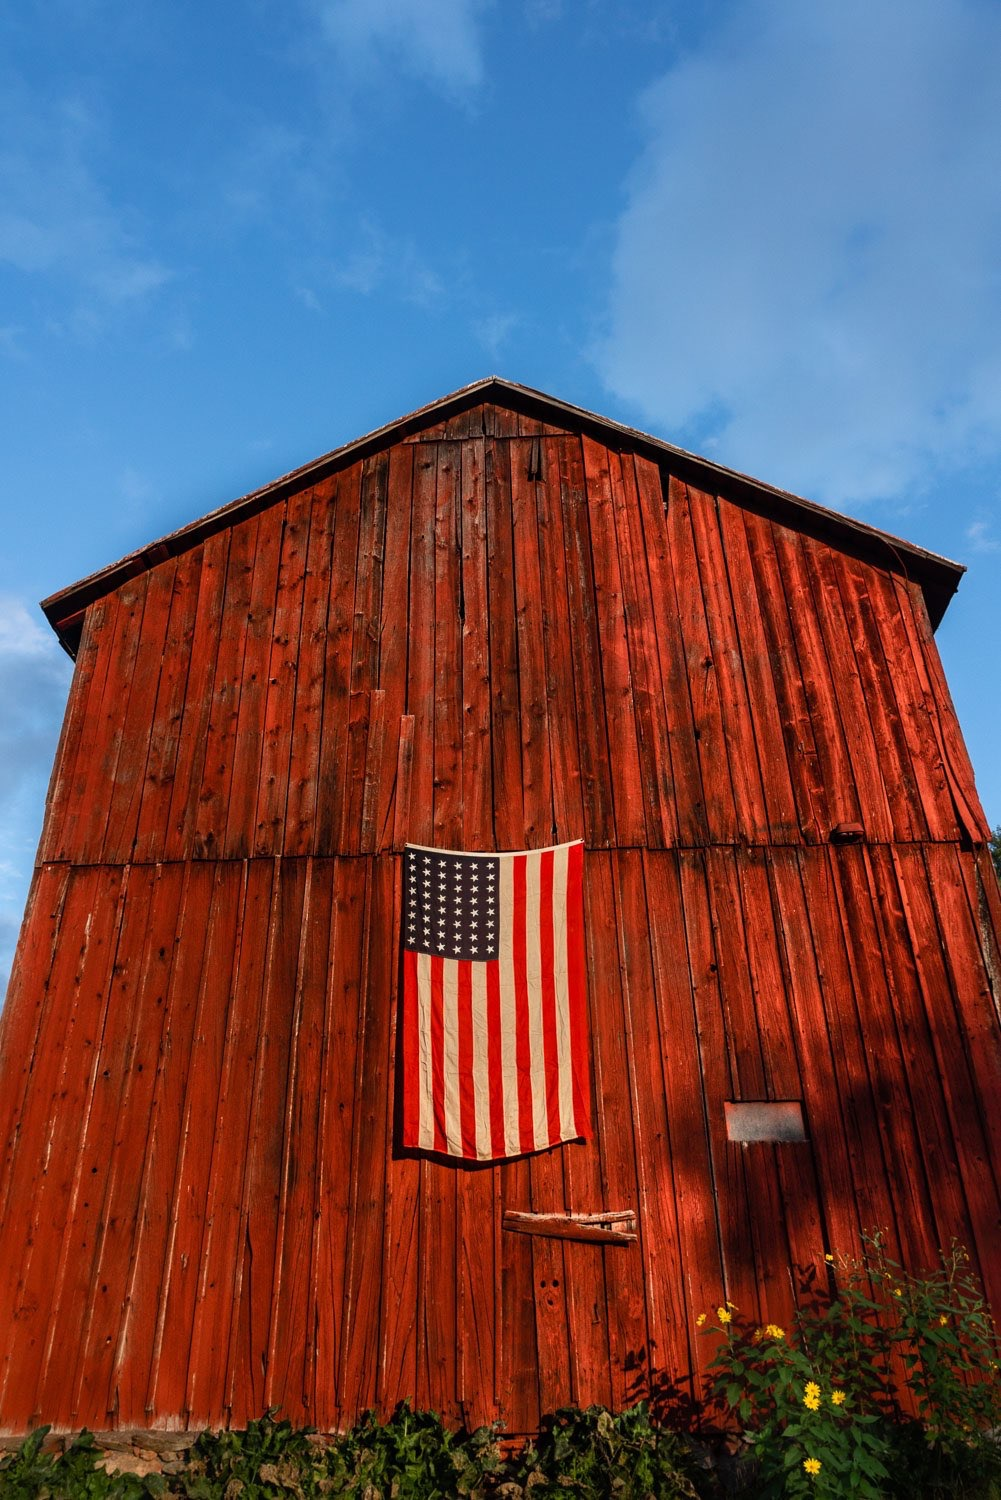 This historic barn glows in the autumn light. Its a piece of Americana with the american flag on the red barn.  johnstuartstudio-compress.jpg